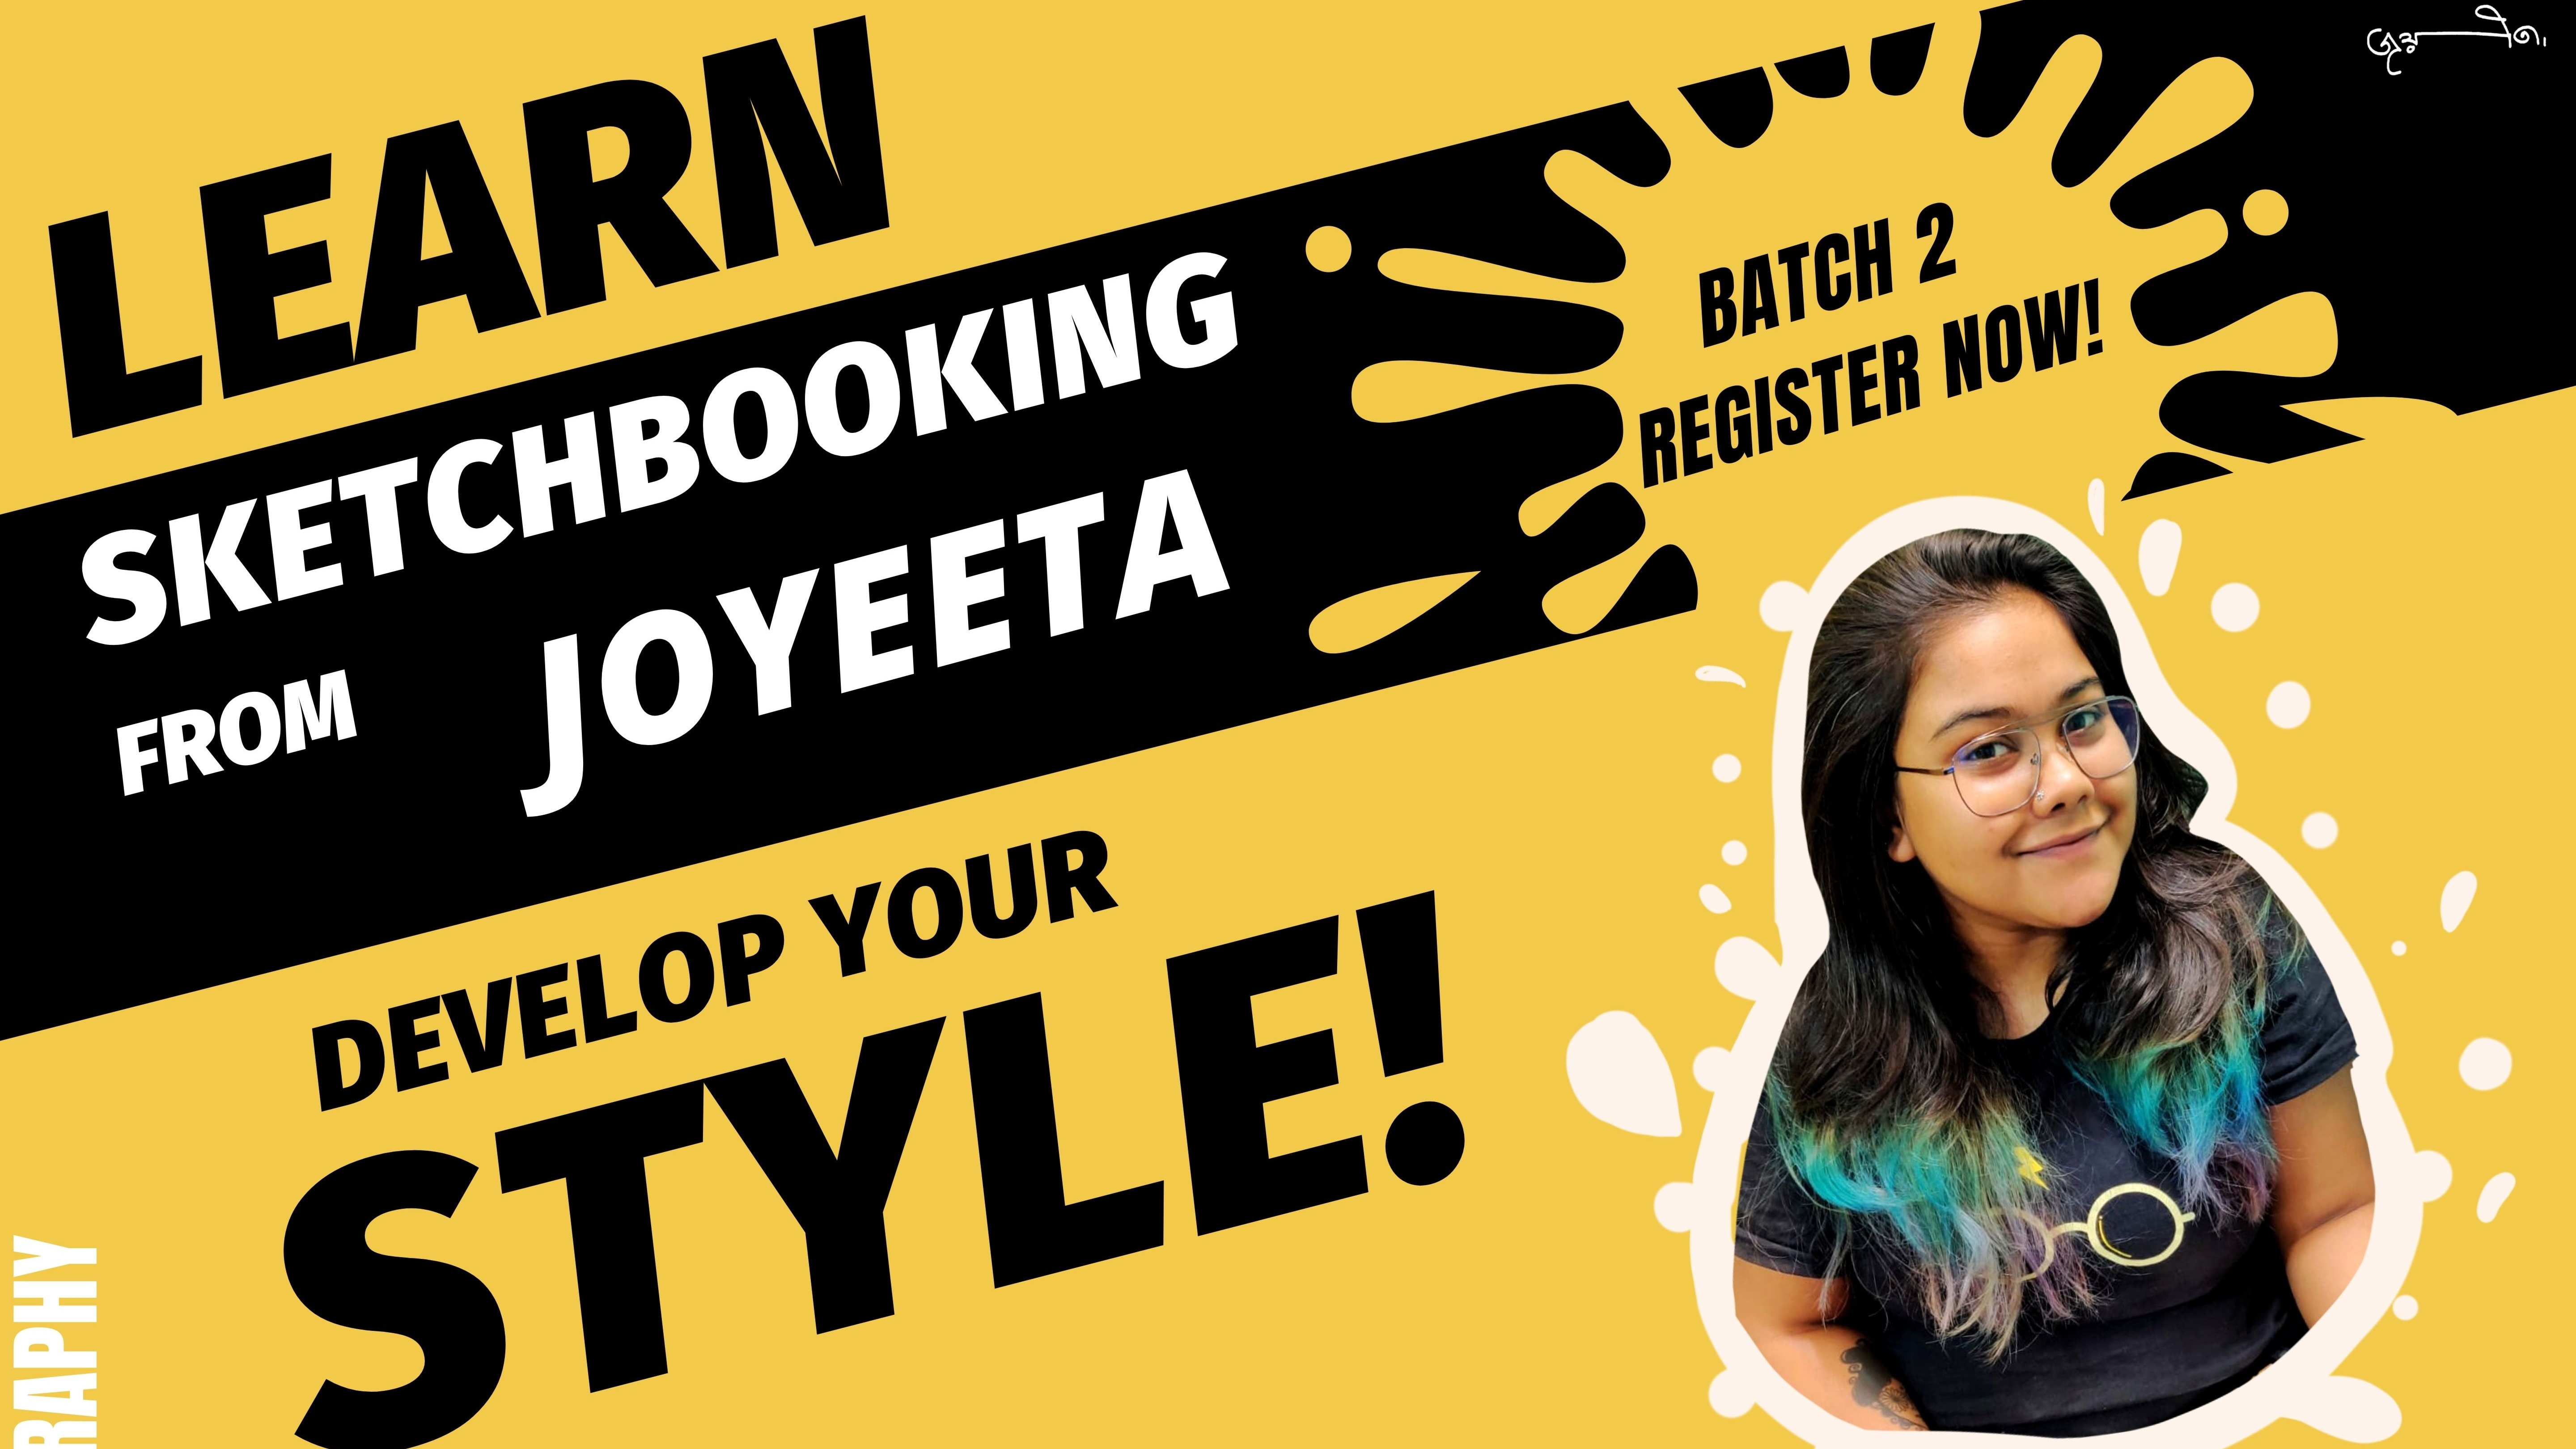 How a Sketchbook can change your Life - Batch 2